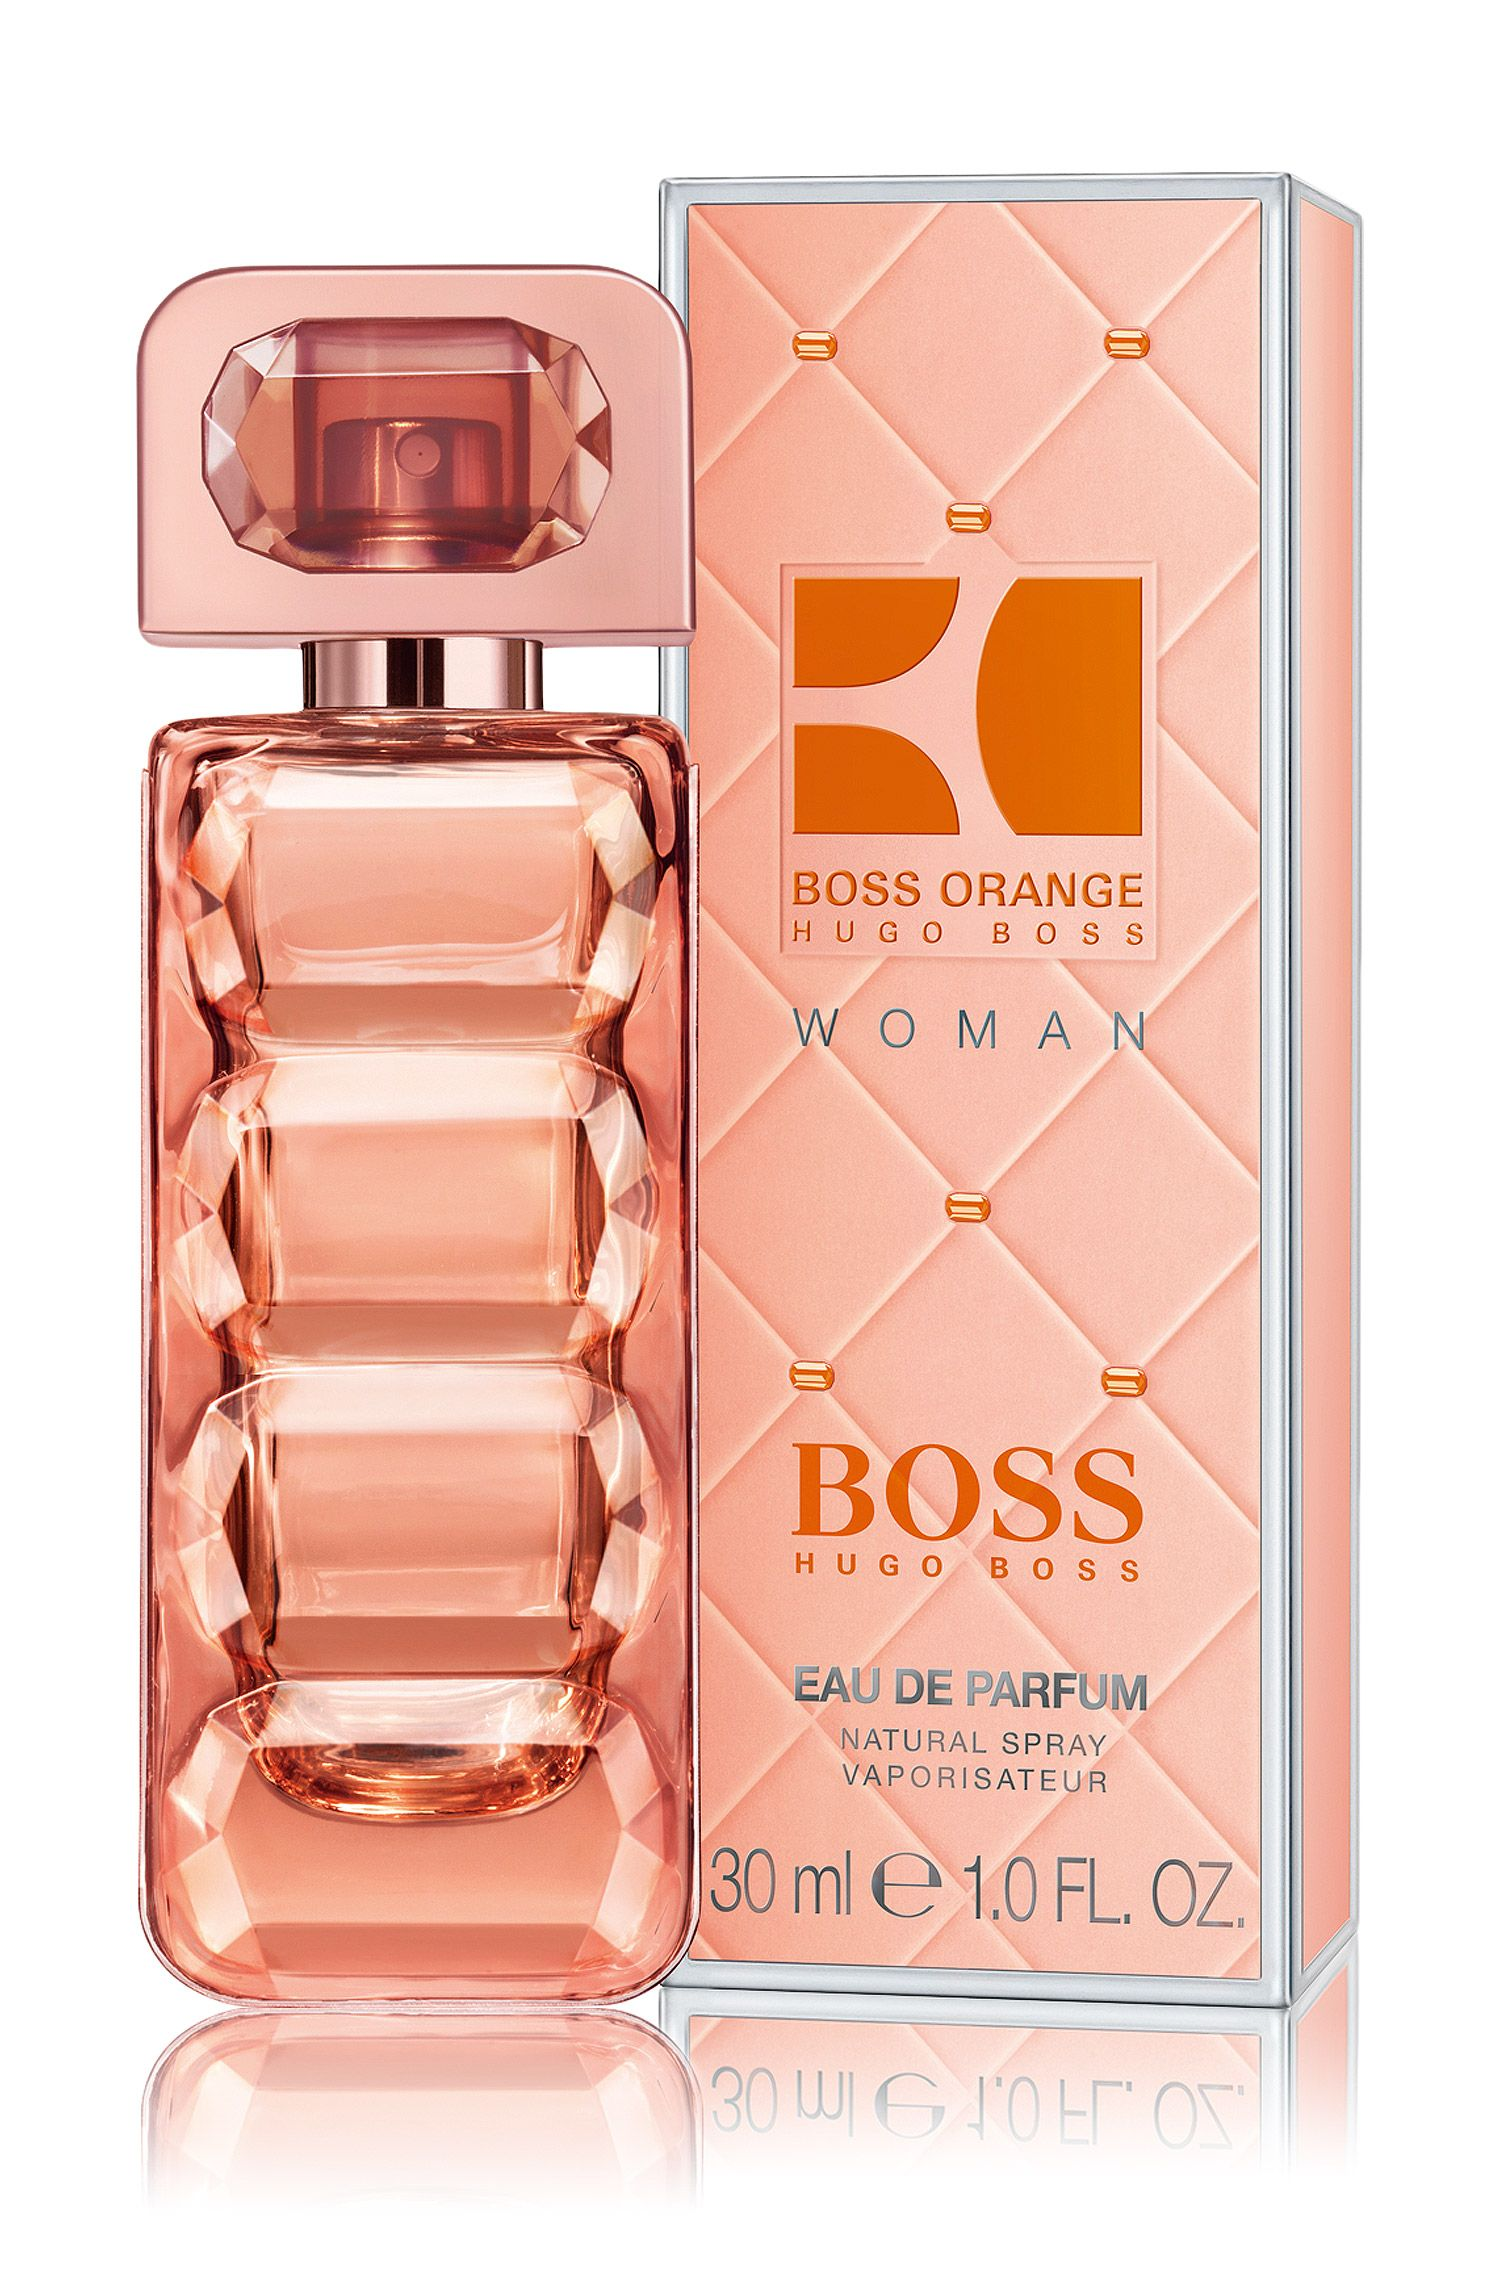 BOSS Orange Woman Eau de Parfum 30 ml